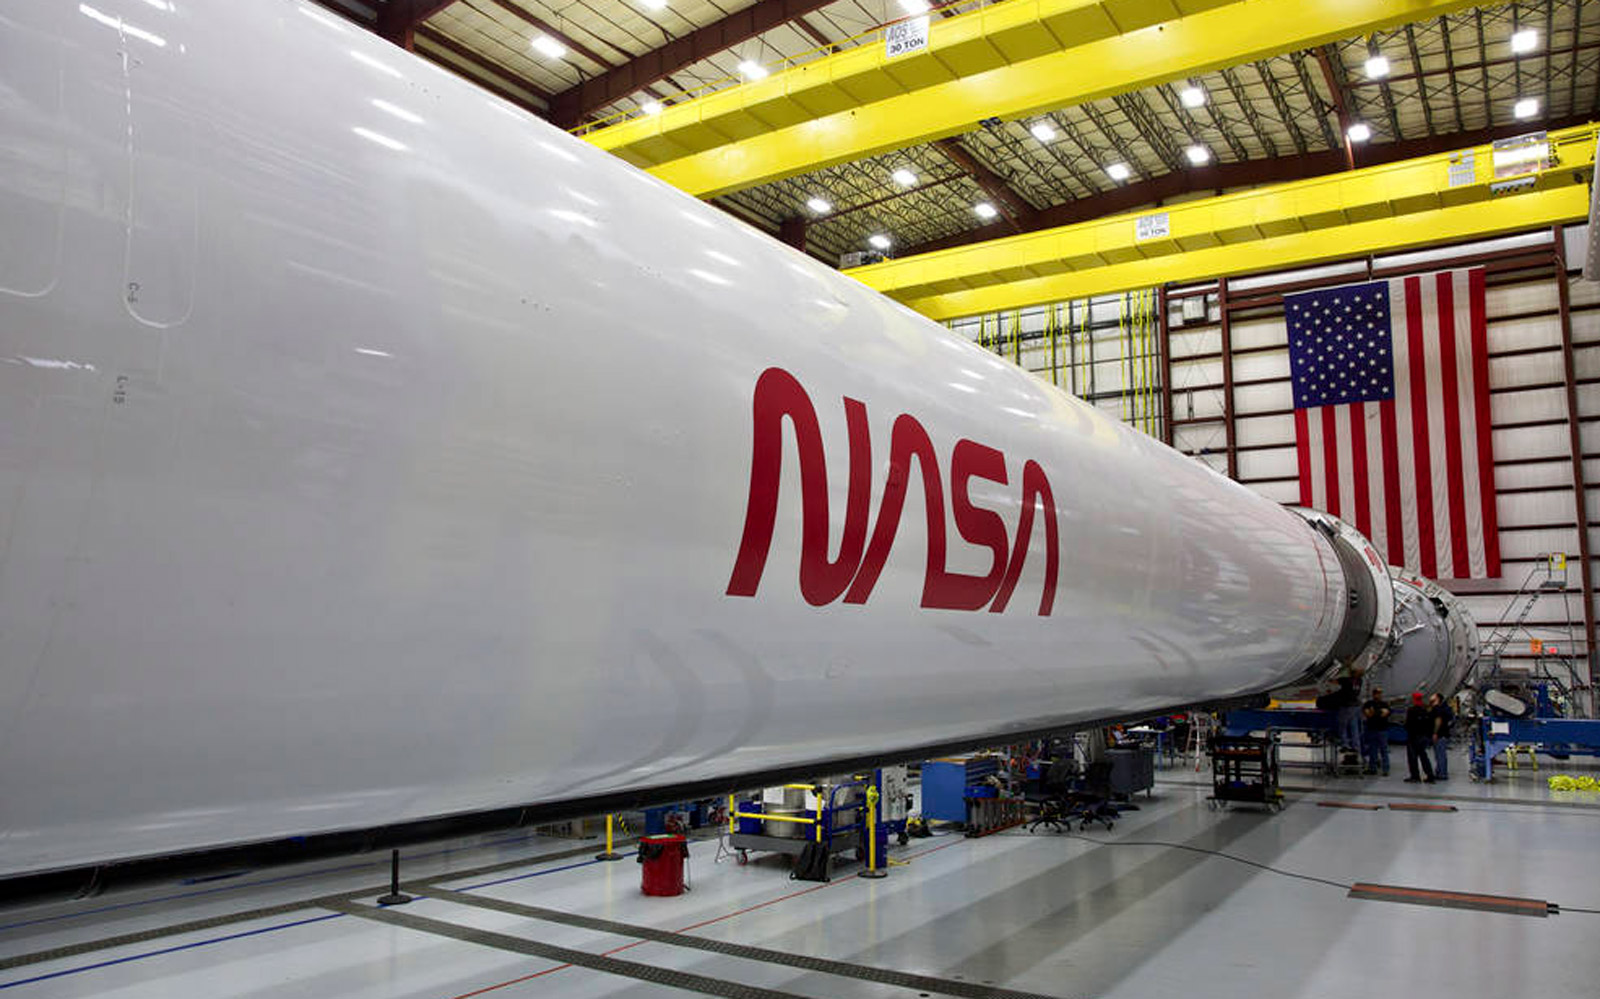 NASA's iconic 'worm' logo will adorn the Falcon 9 Crew Dragon rocket